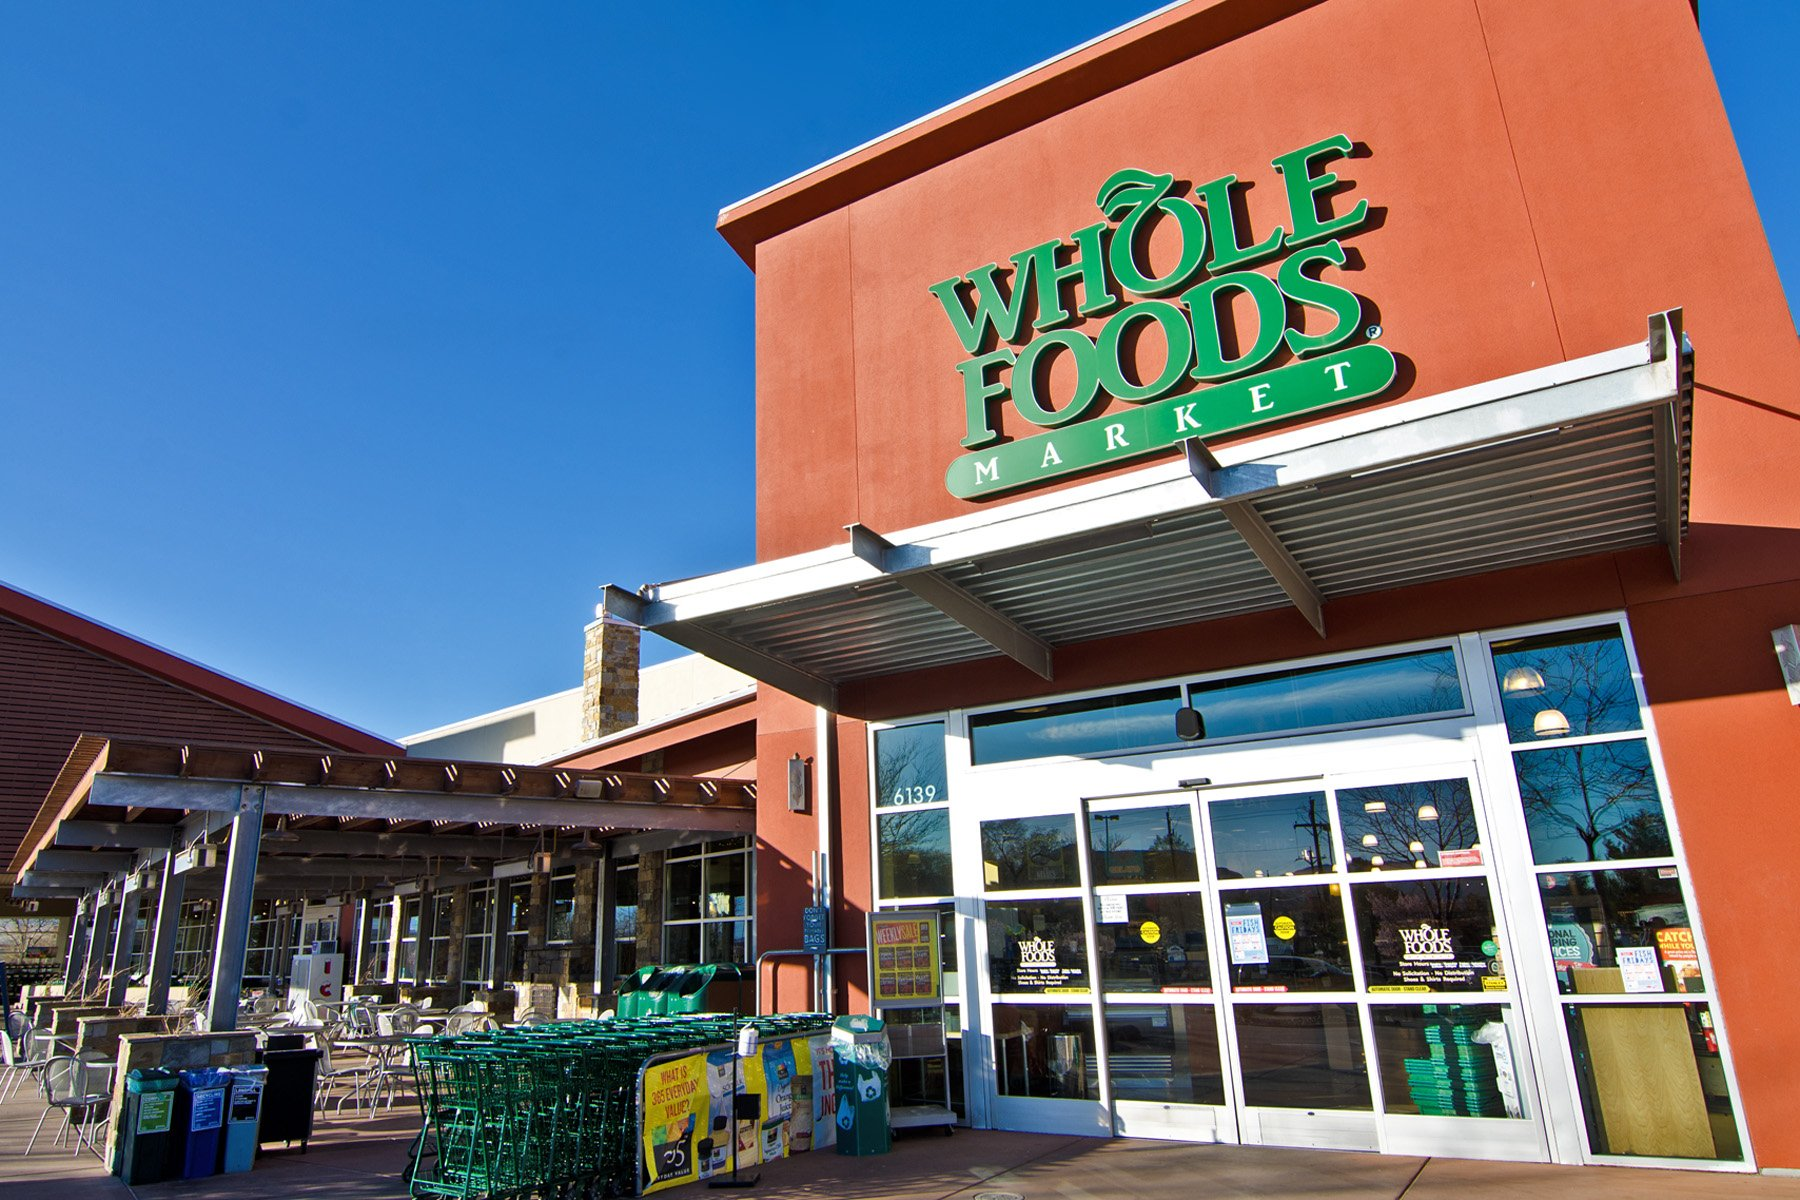 Local organic food shops not sweating Whole Foods powered by Amazon